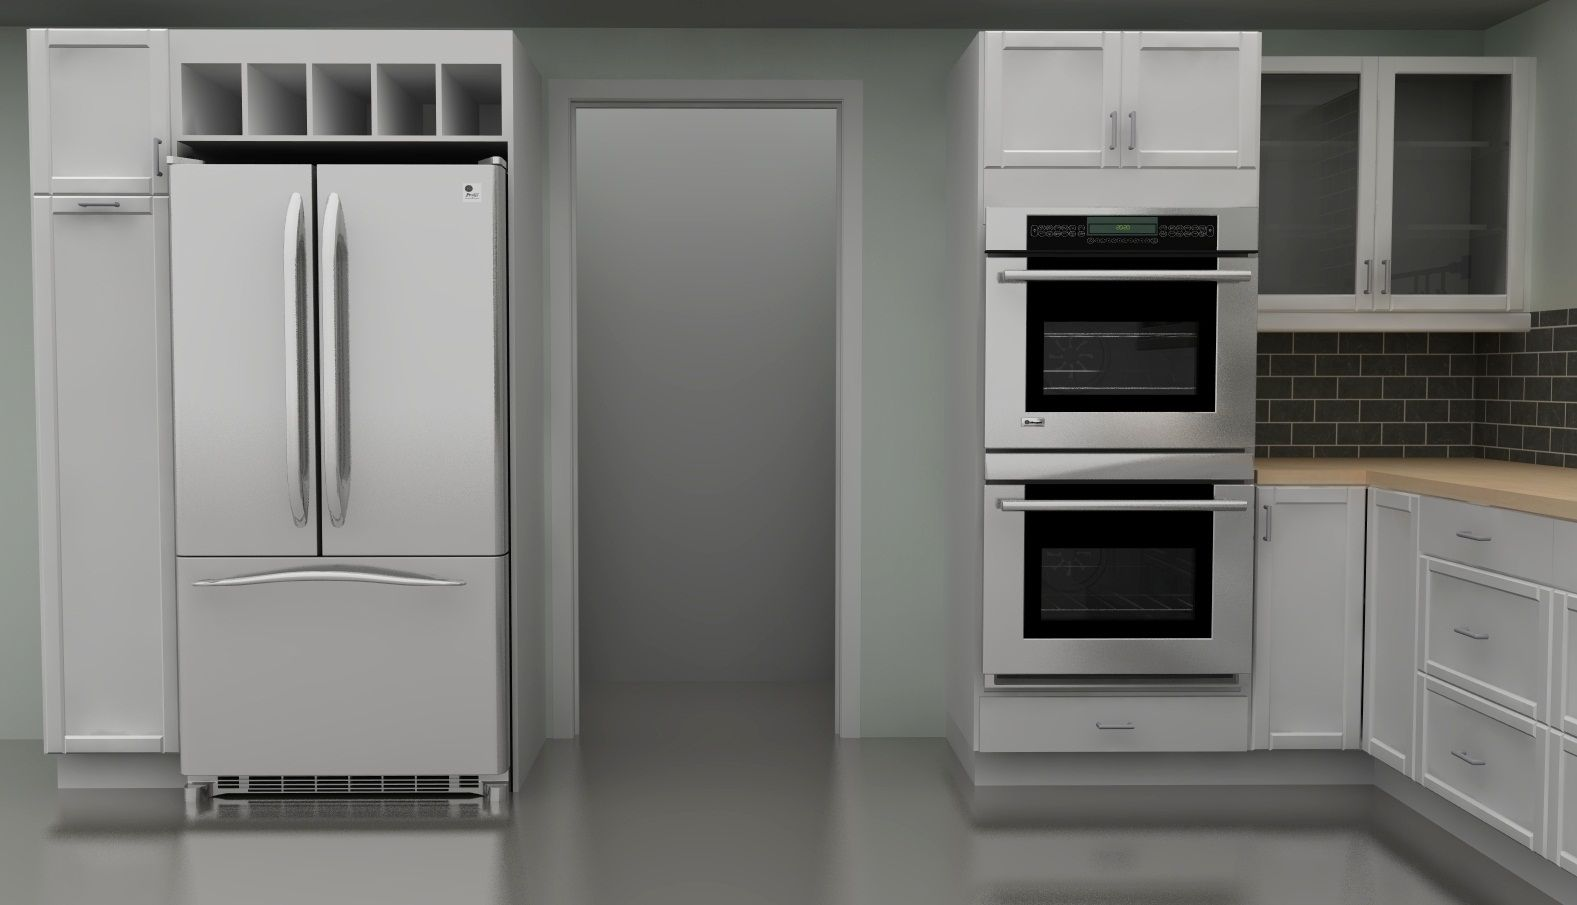 Wall Cabinets With Double Oven Ikea Kitchen Design Ikea Kitchen Kitchen Redesign